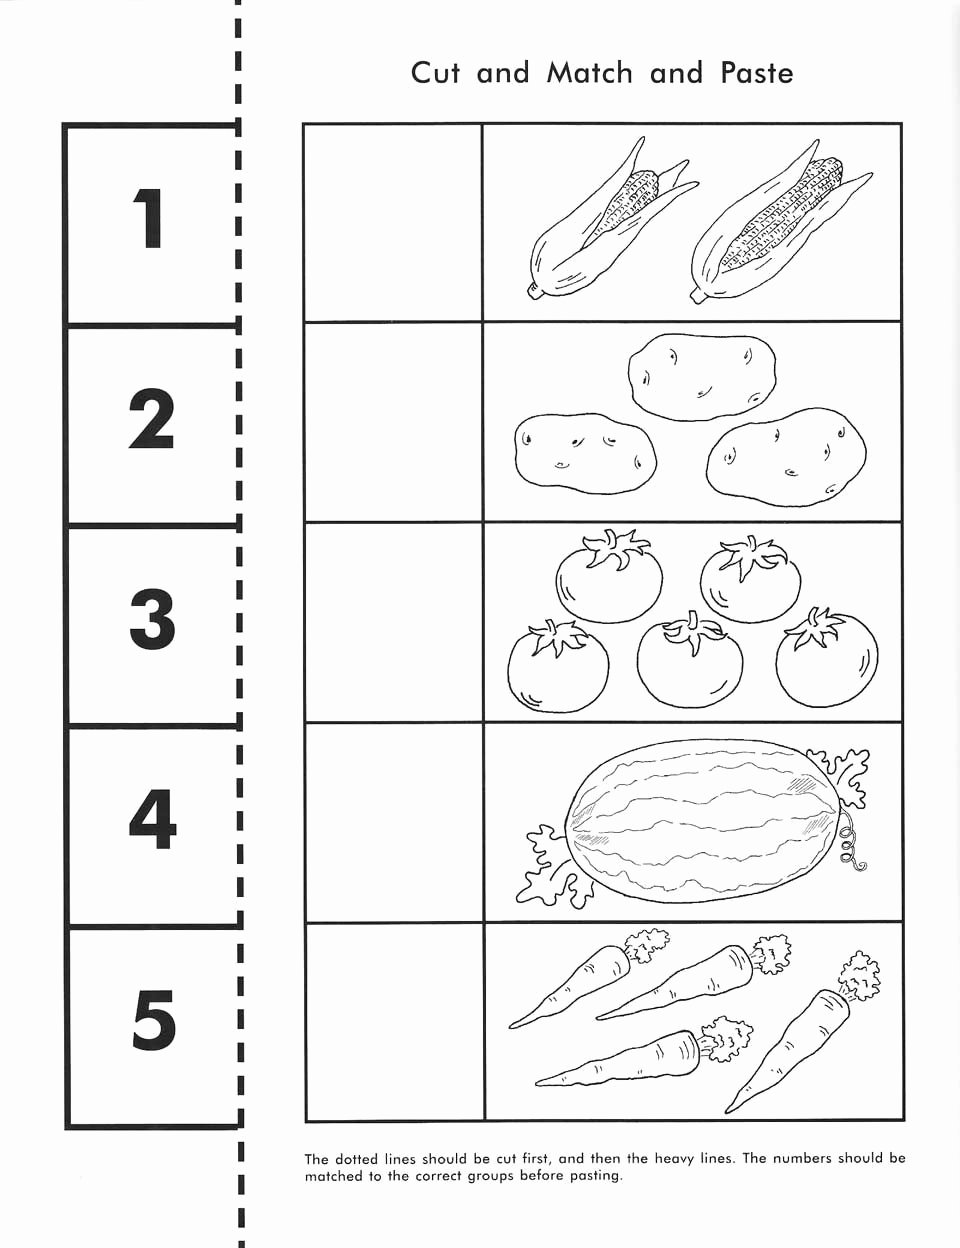 Cut and Paste Math Worksheets Best Of Home Education Journal Rod & Staff Preschool Workbooks